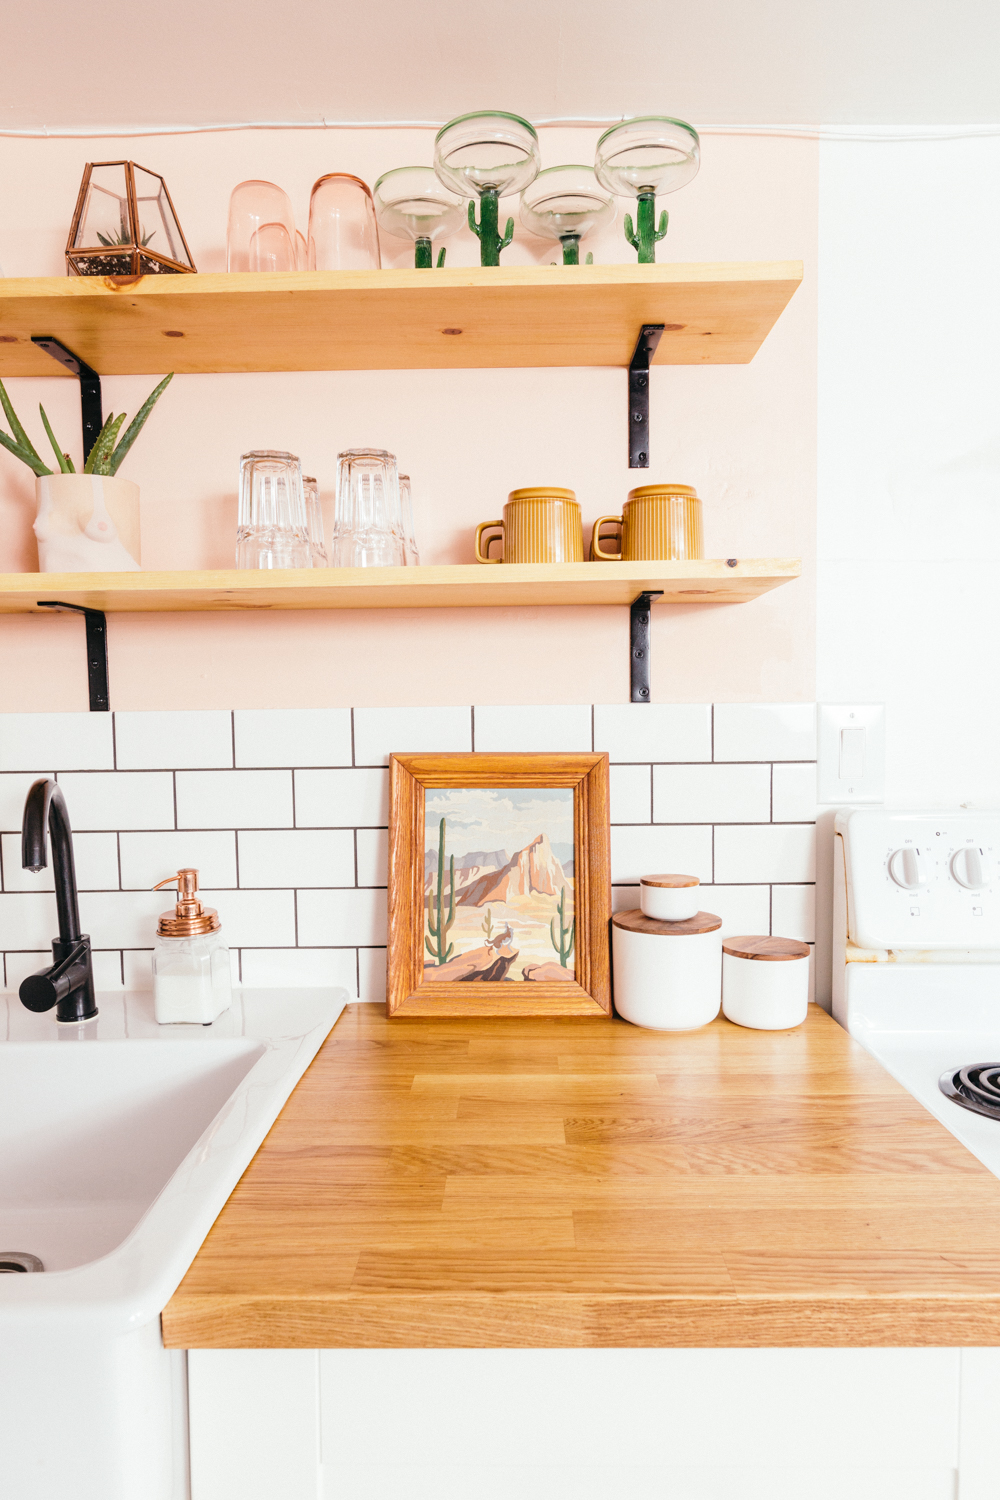 10 Kitchen And Home Decor Items Every 20 Something Needs: DIY Basement Apartment Kitchen Renovation